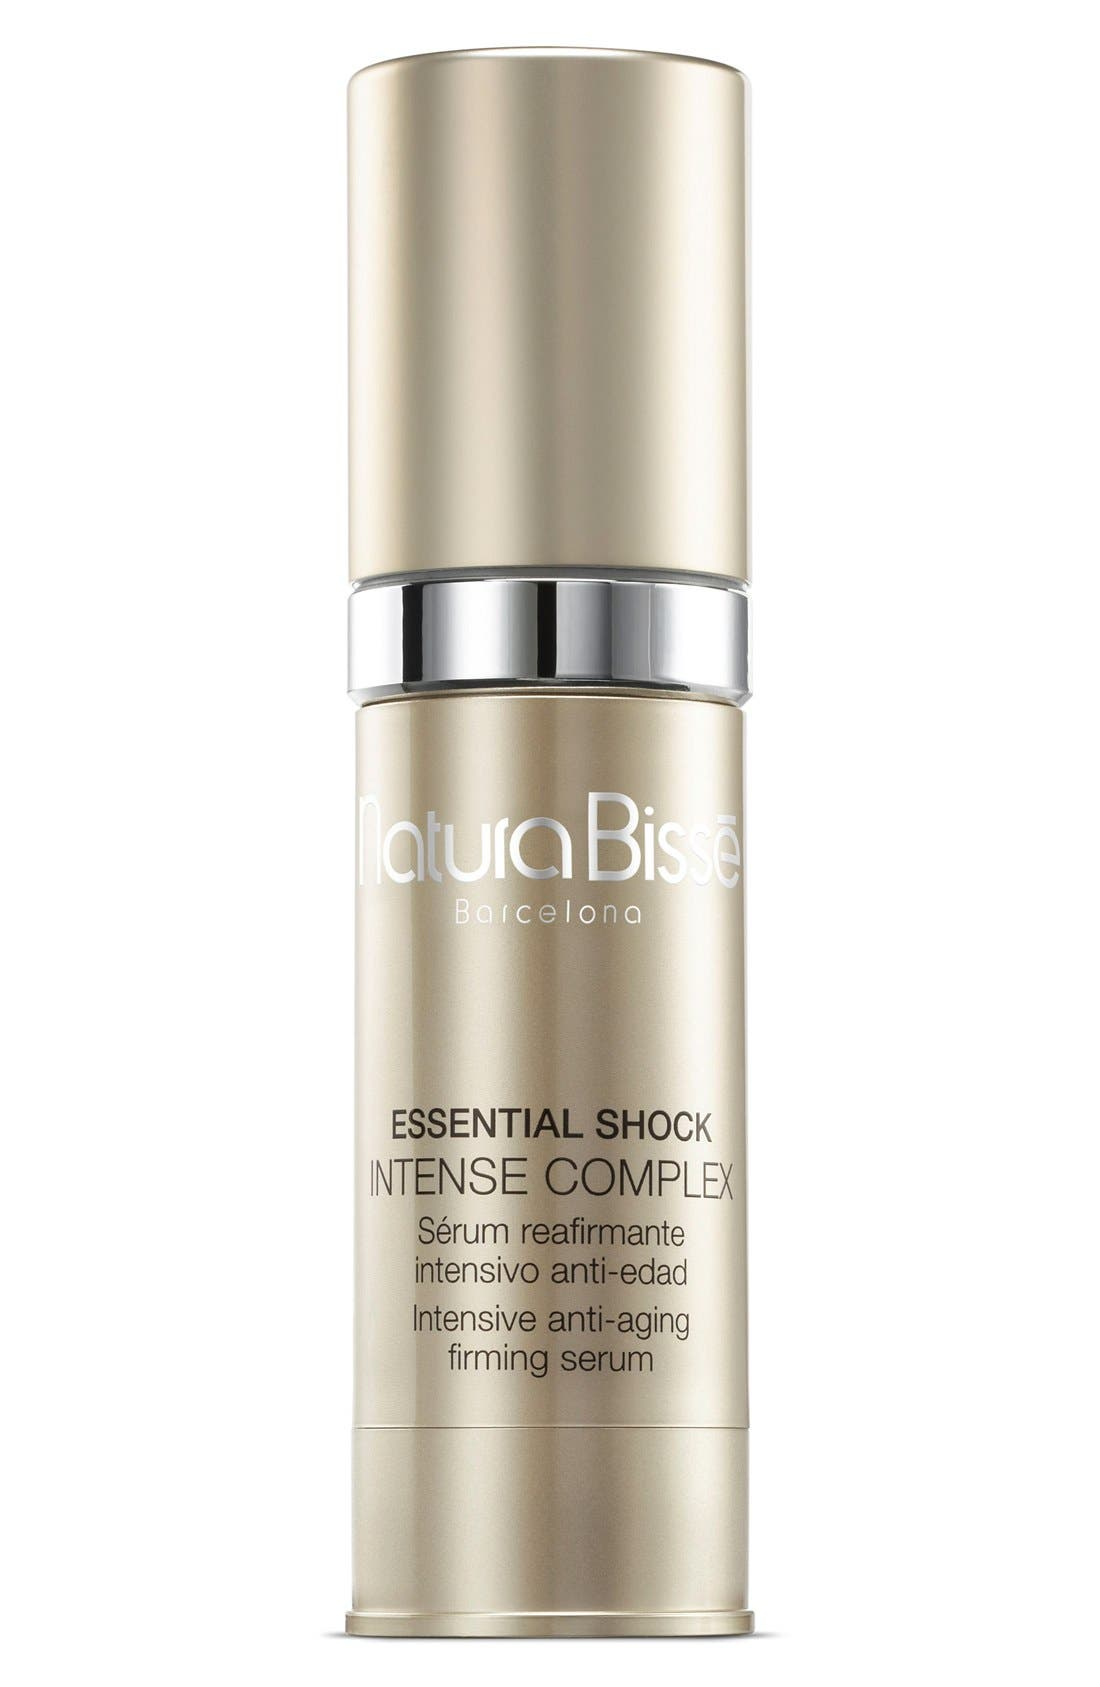 SPACE.NK.apothecary Natura Bissé Essential Shock Intense Complex Intensive Anti-Aging Firming Serum